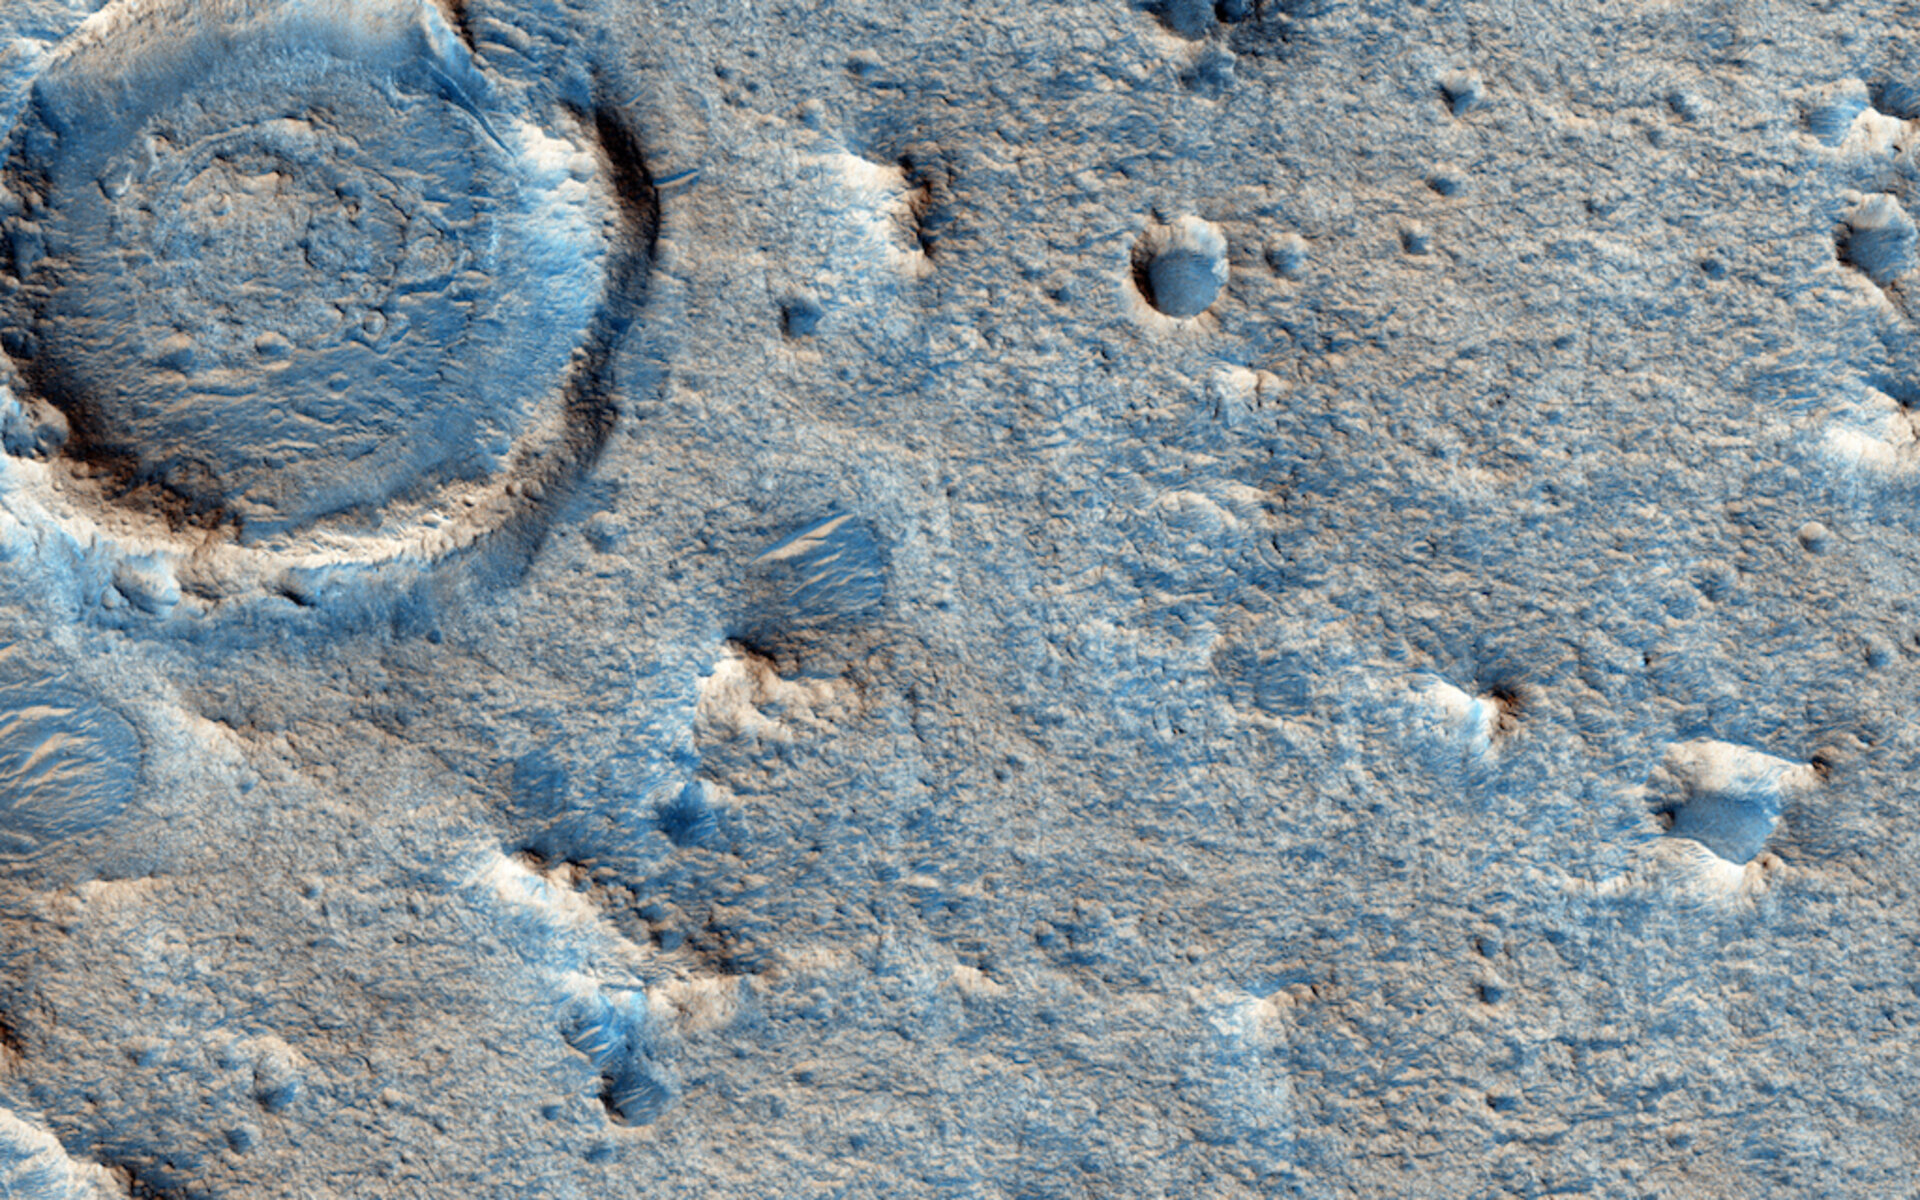 Oxia Planum close up